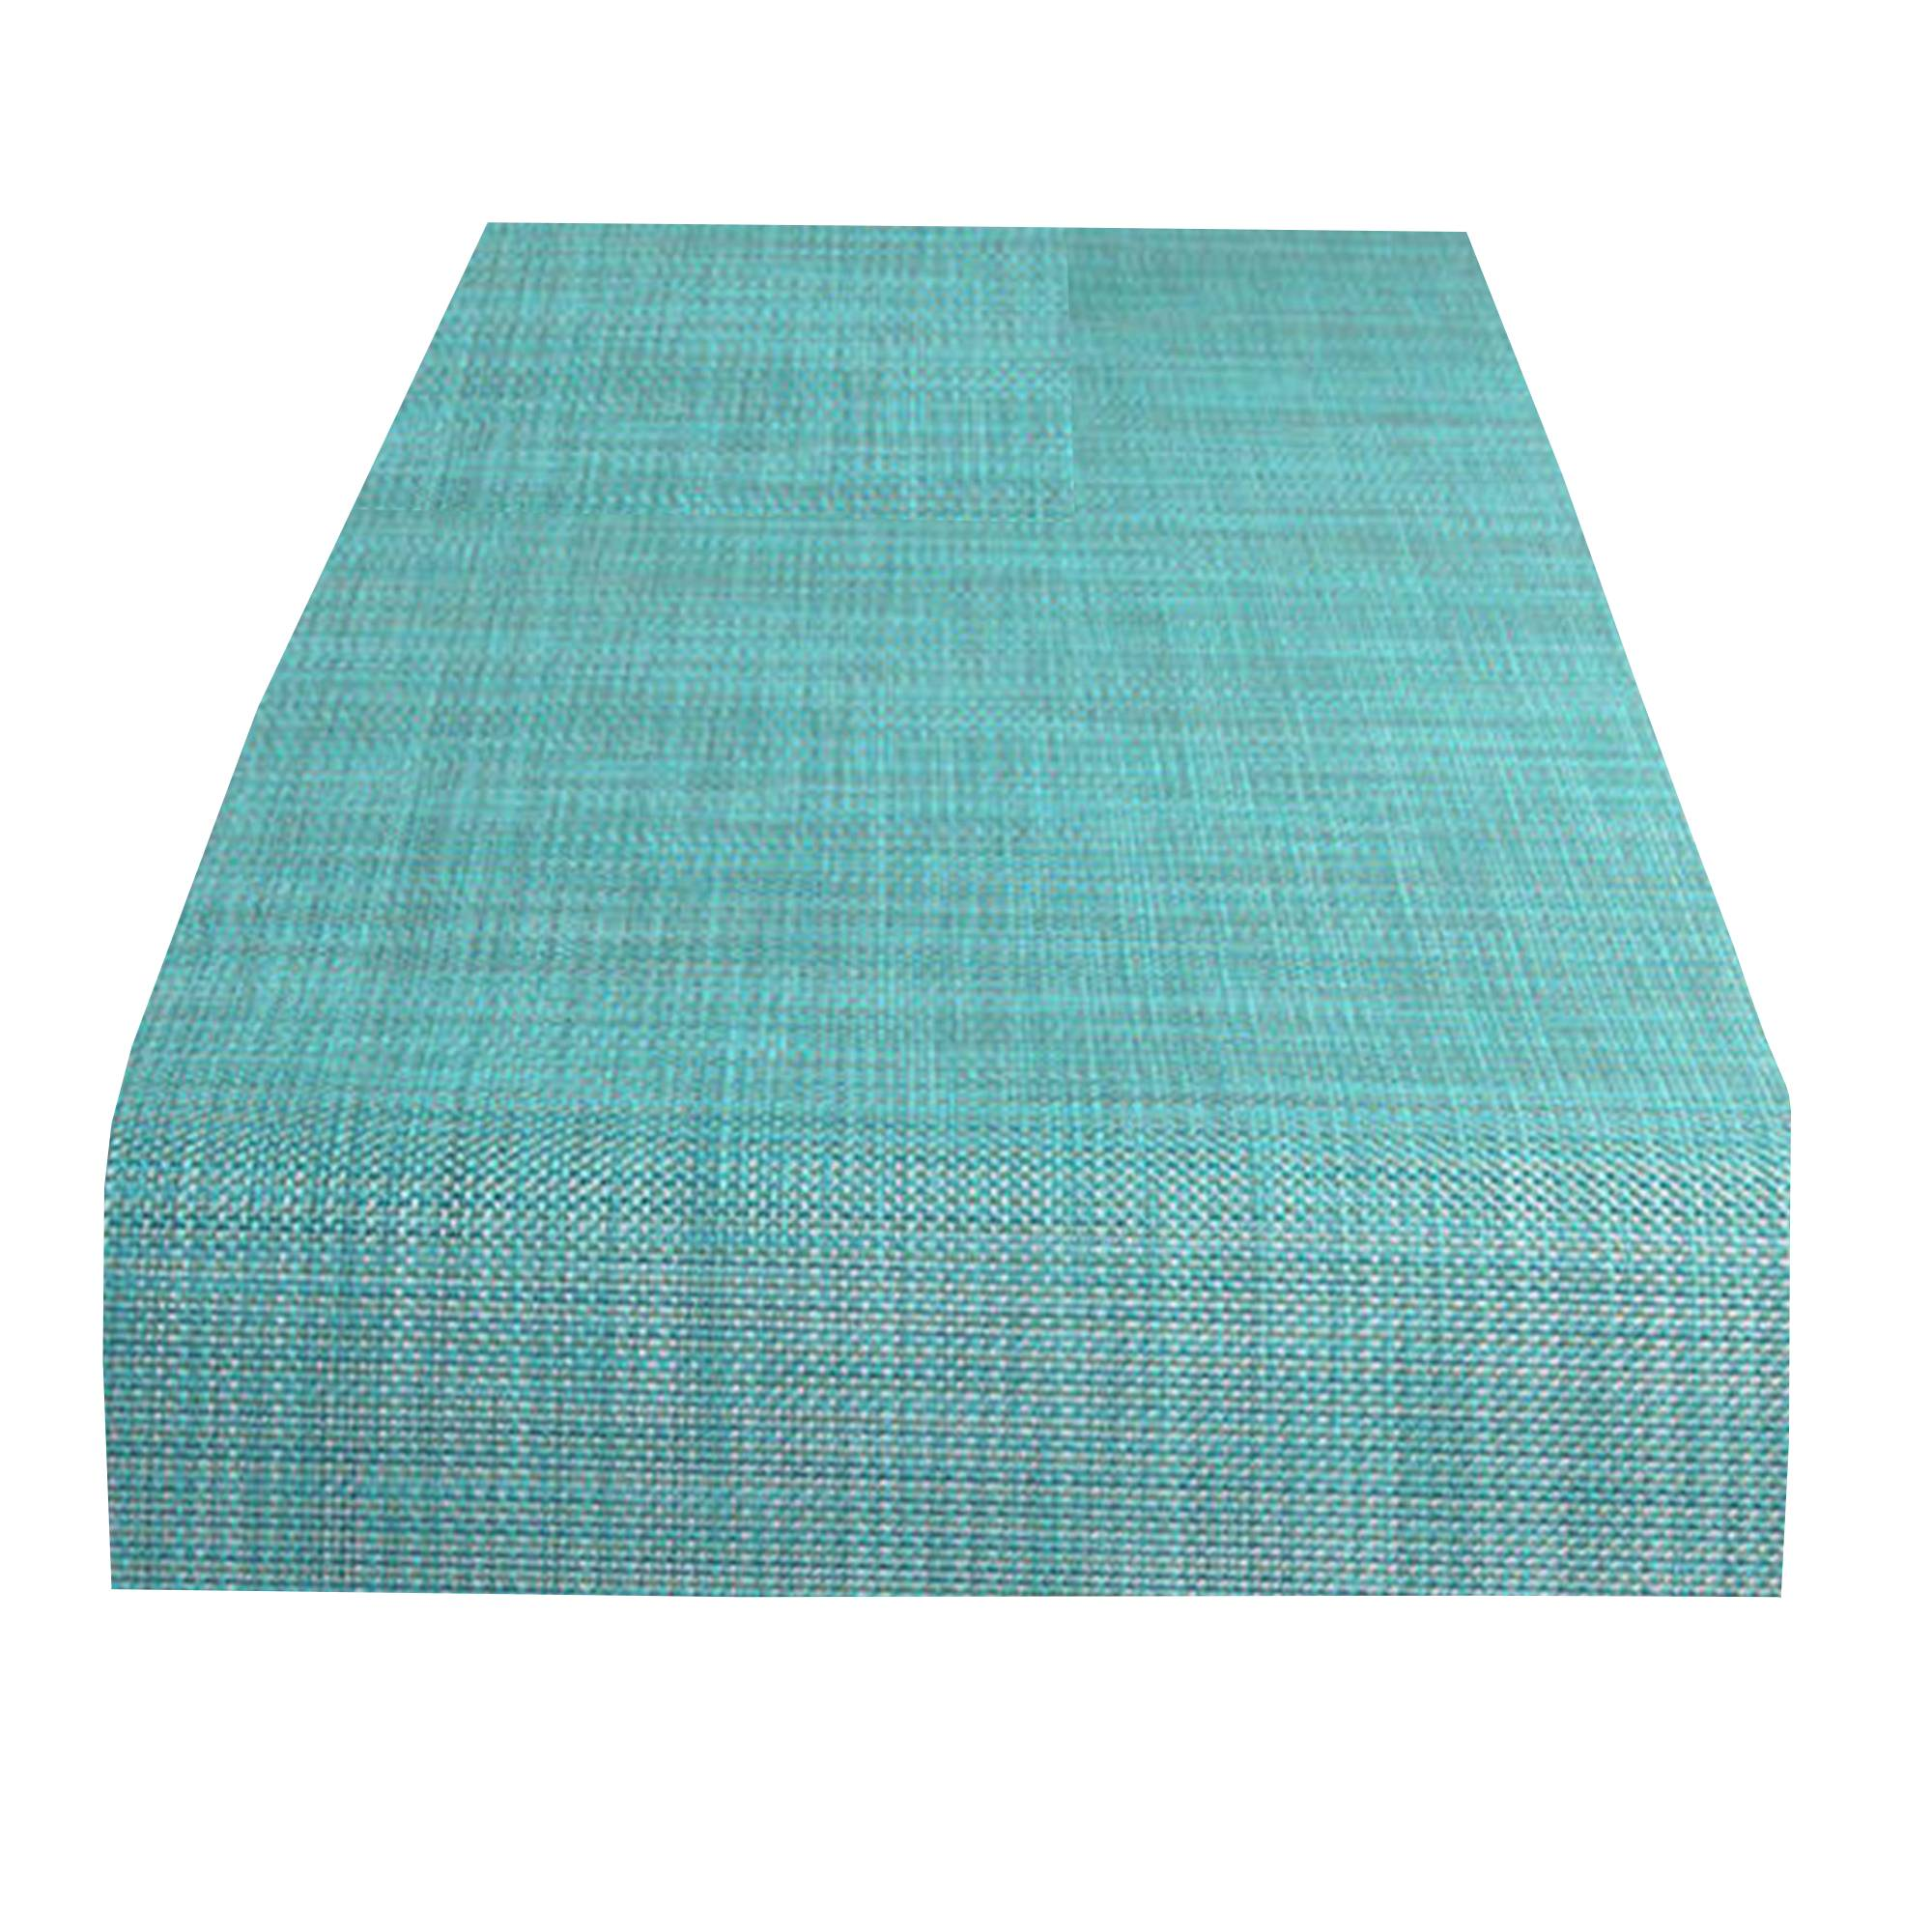 Mini Basketweave Table Runner: Turquiose